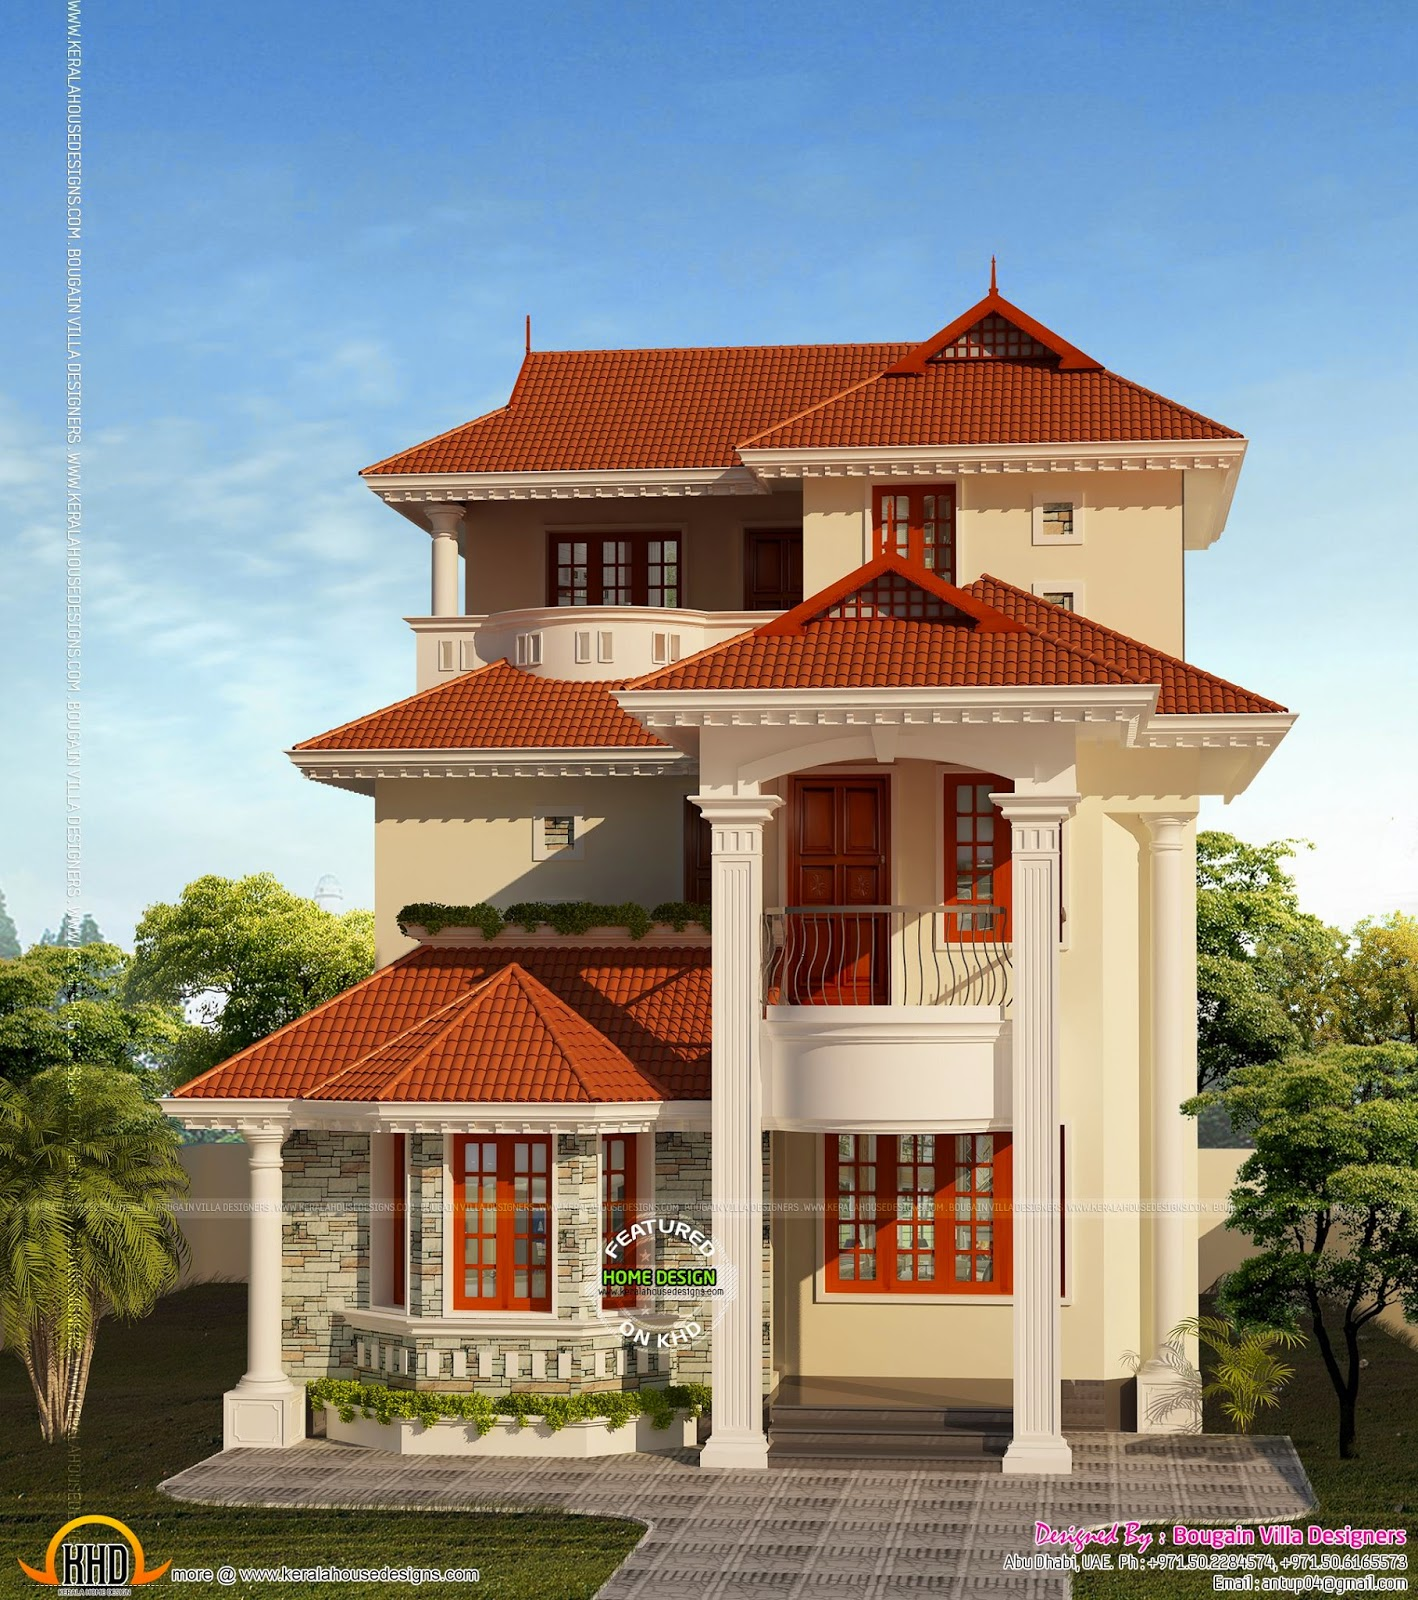 Small plot house plan kerala home design and floor plans Home get design